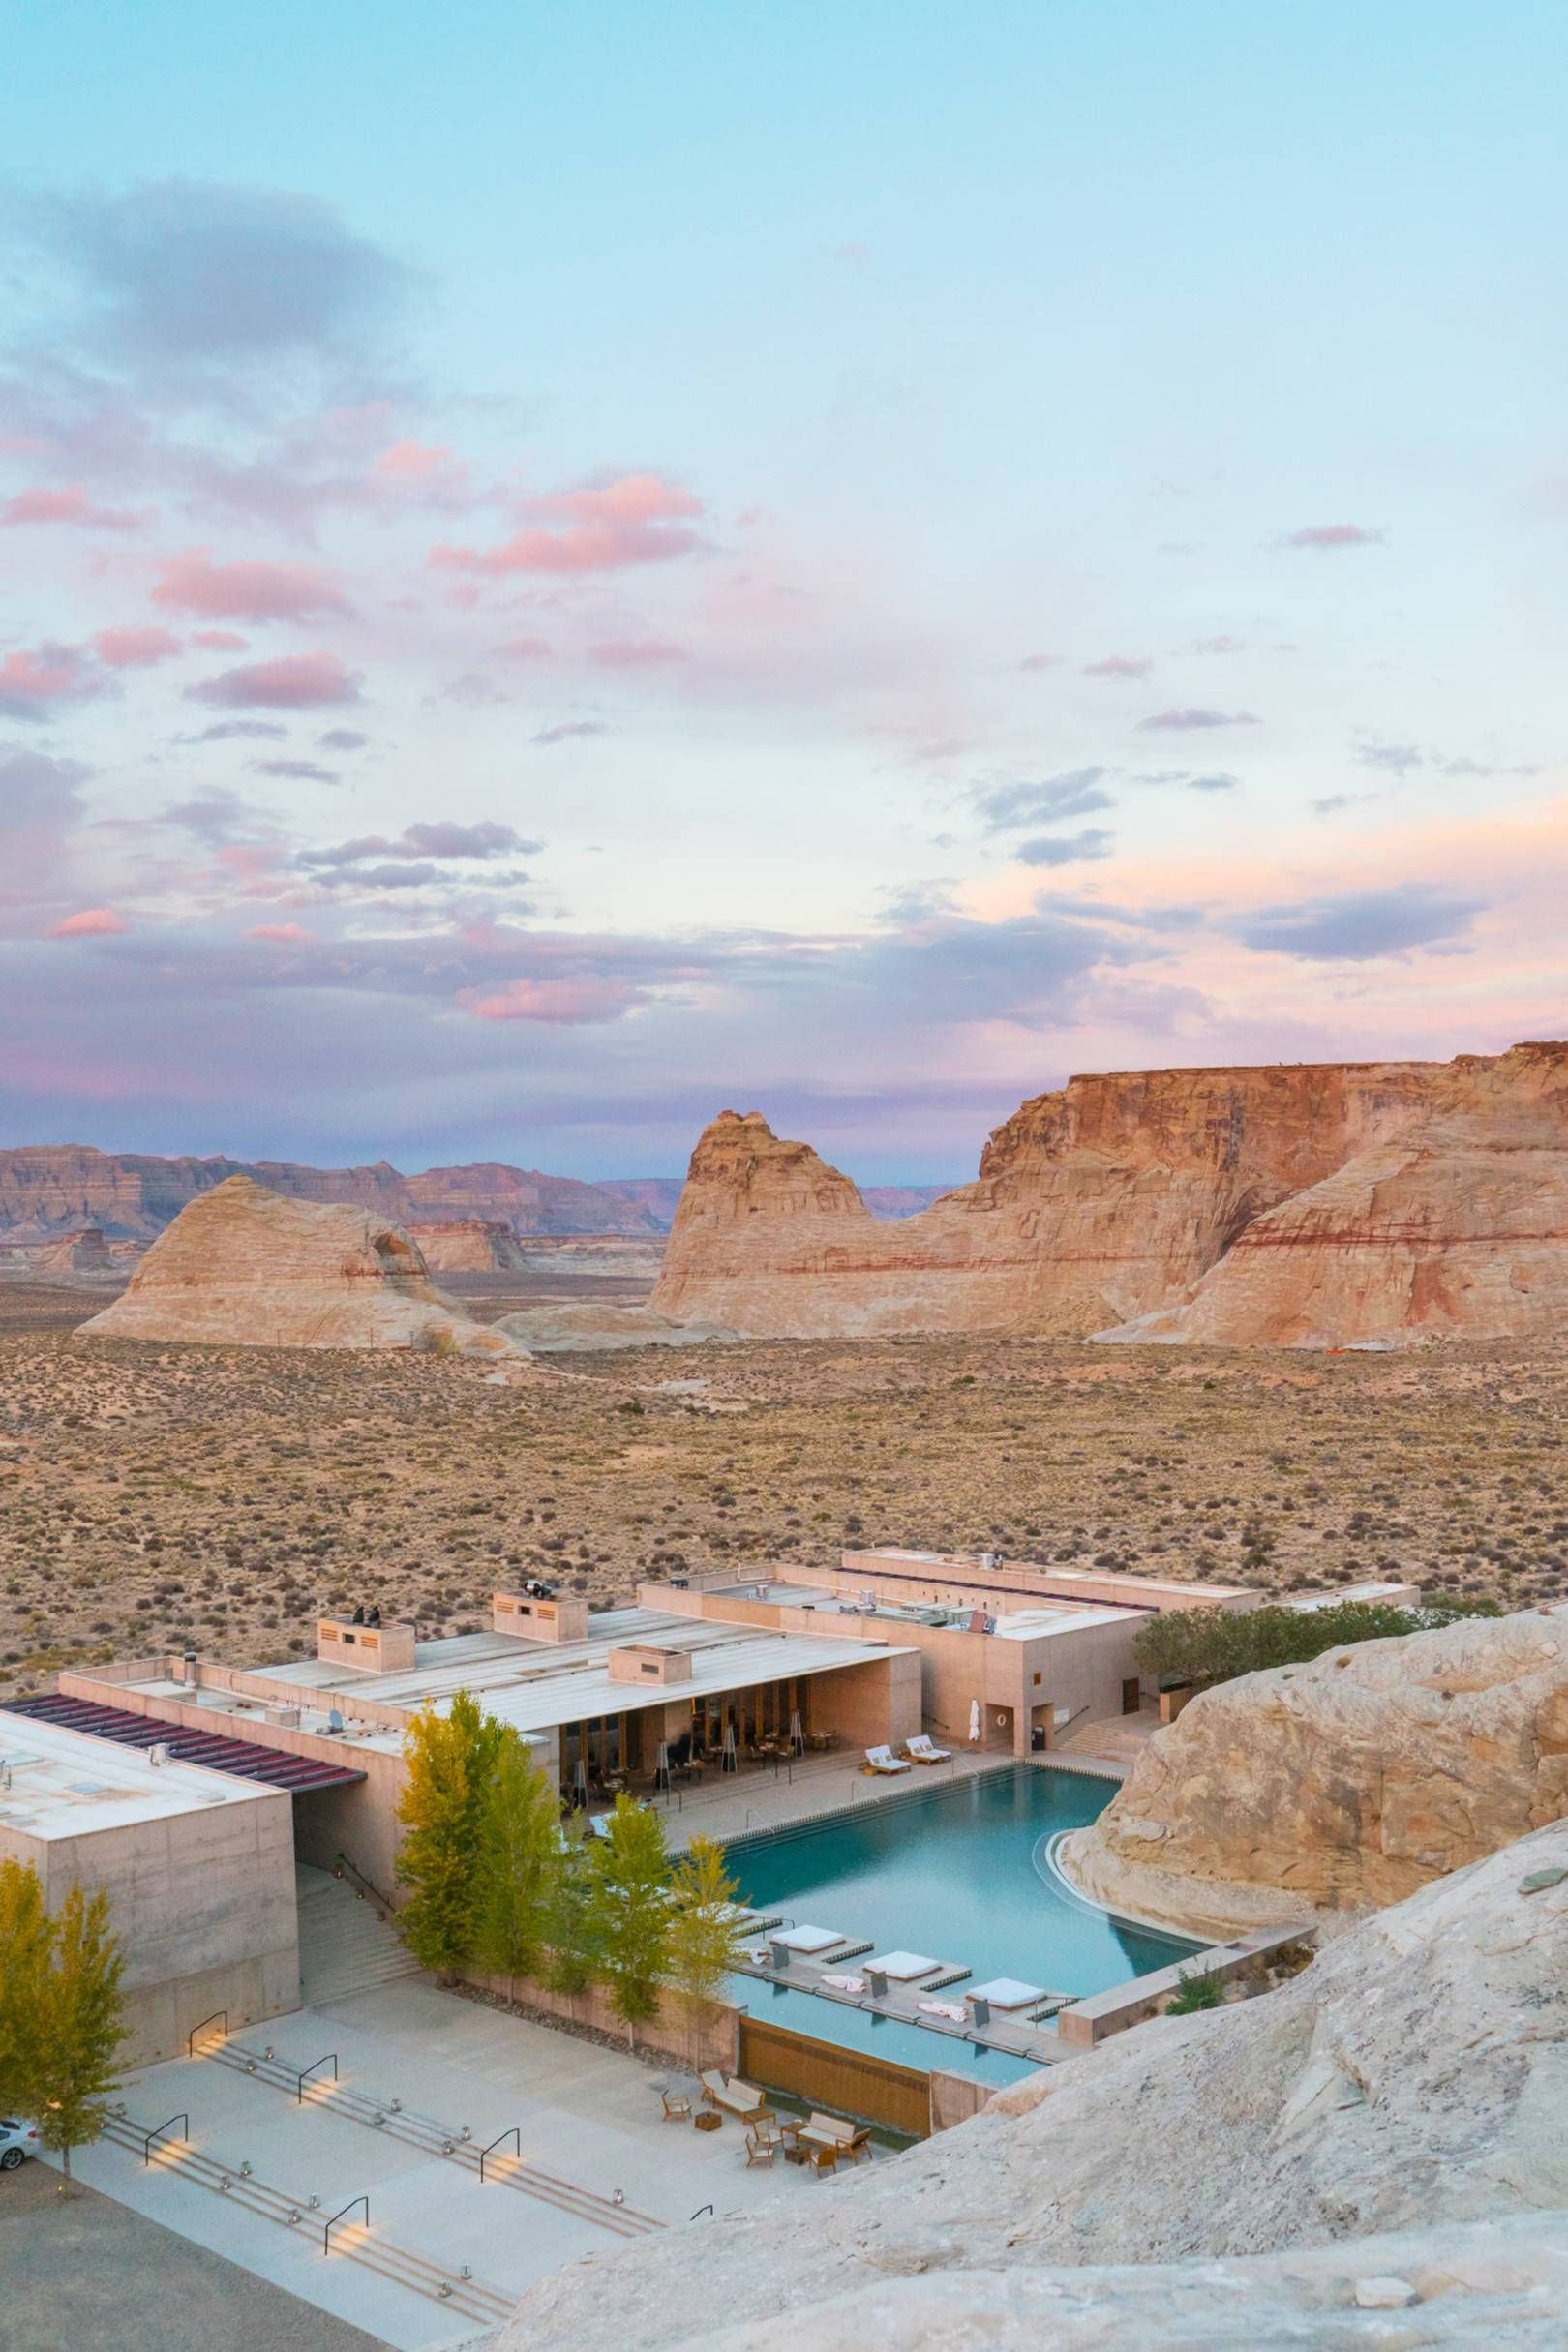 140 of the most beautiful swimming pools in the world #utahusa